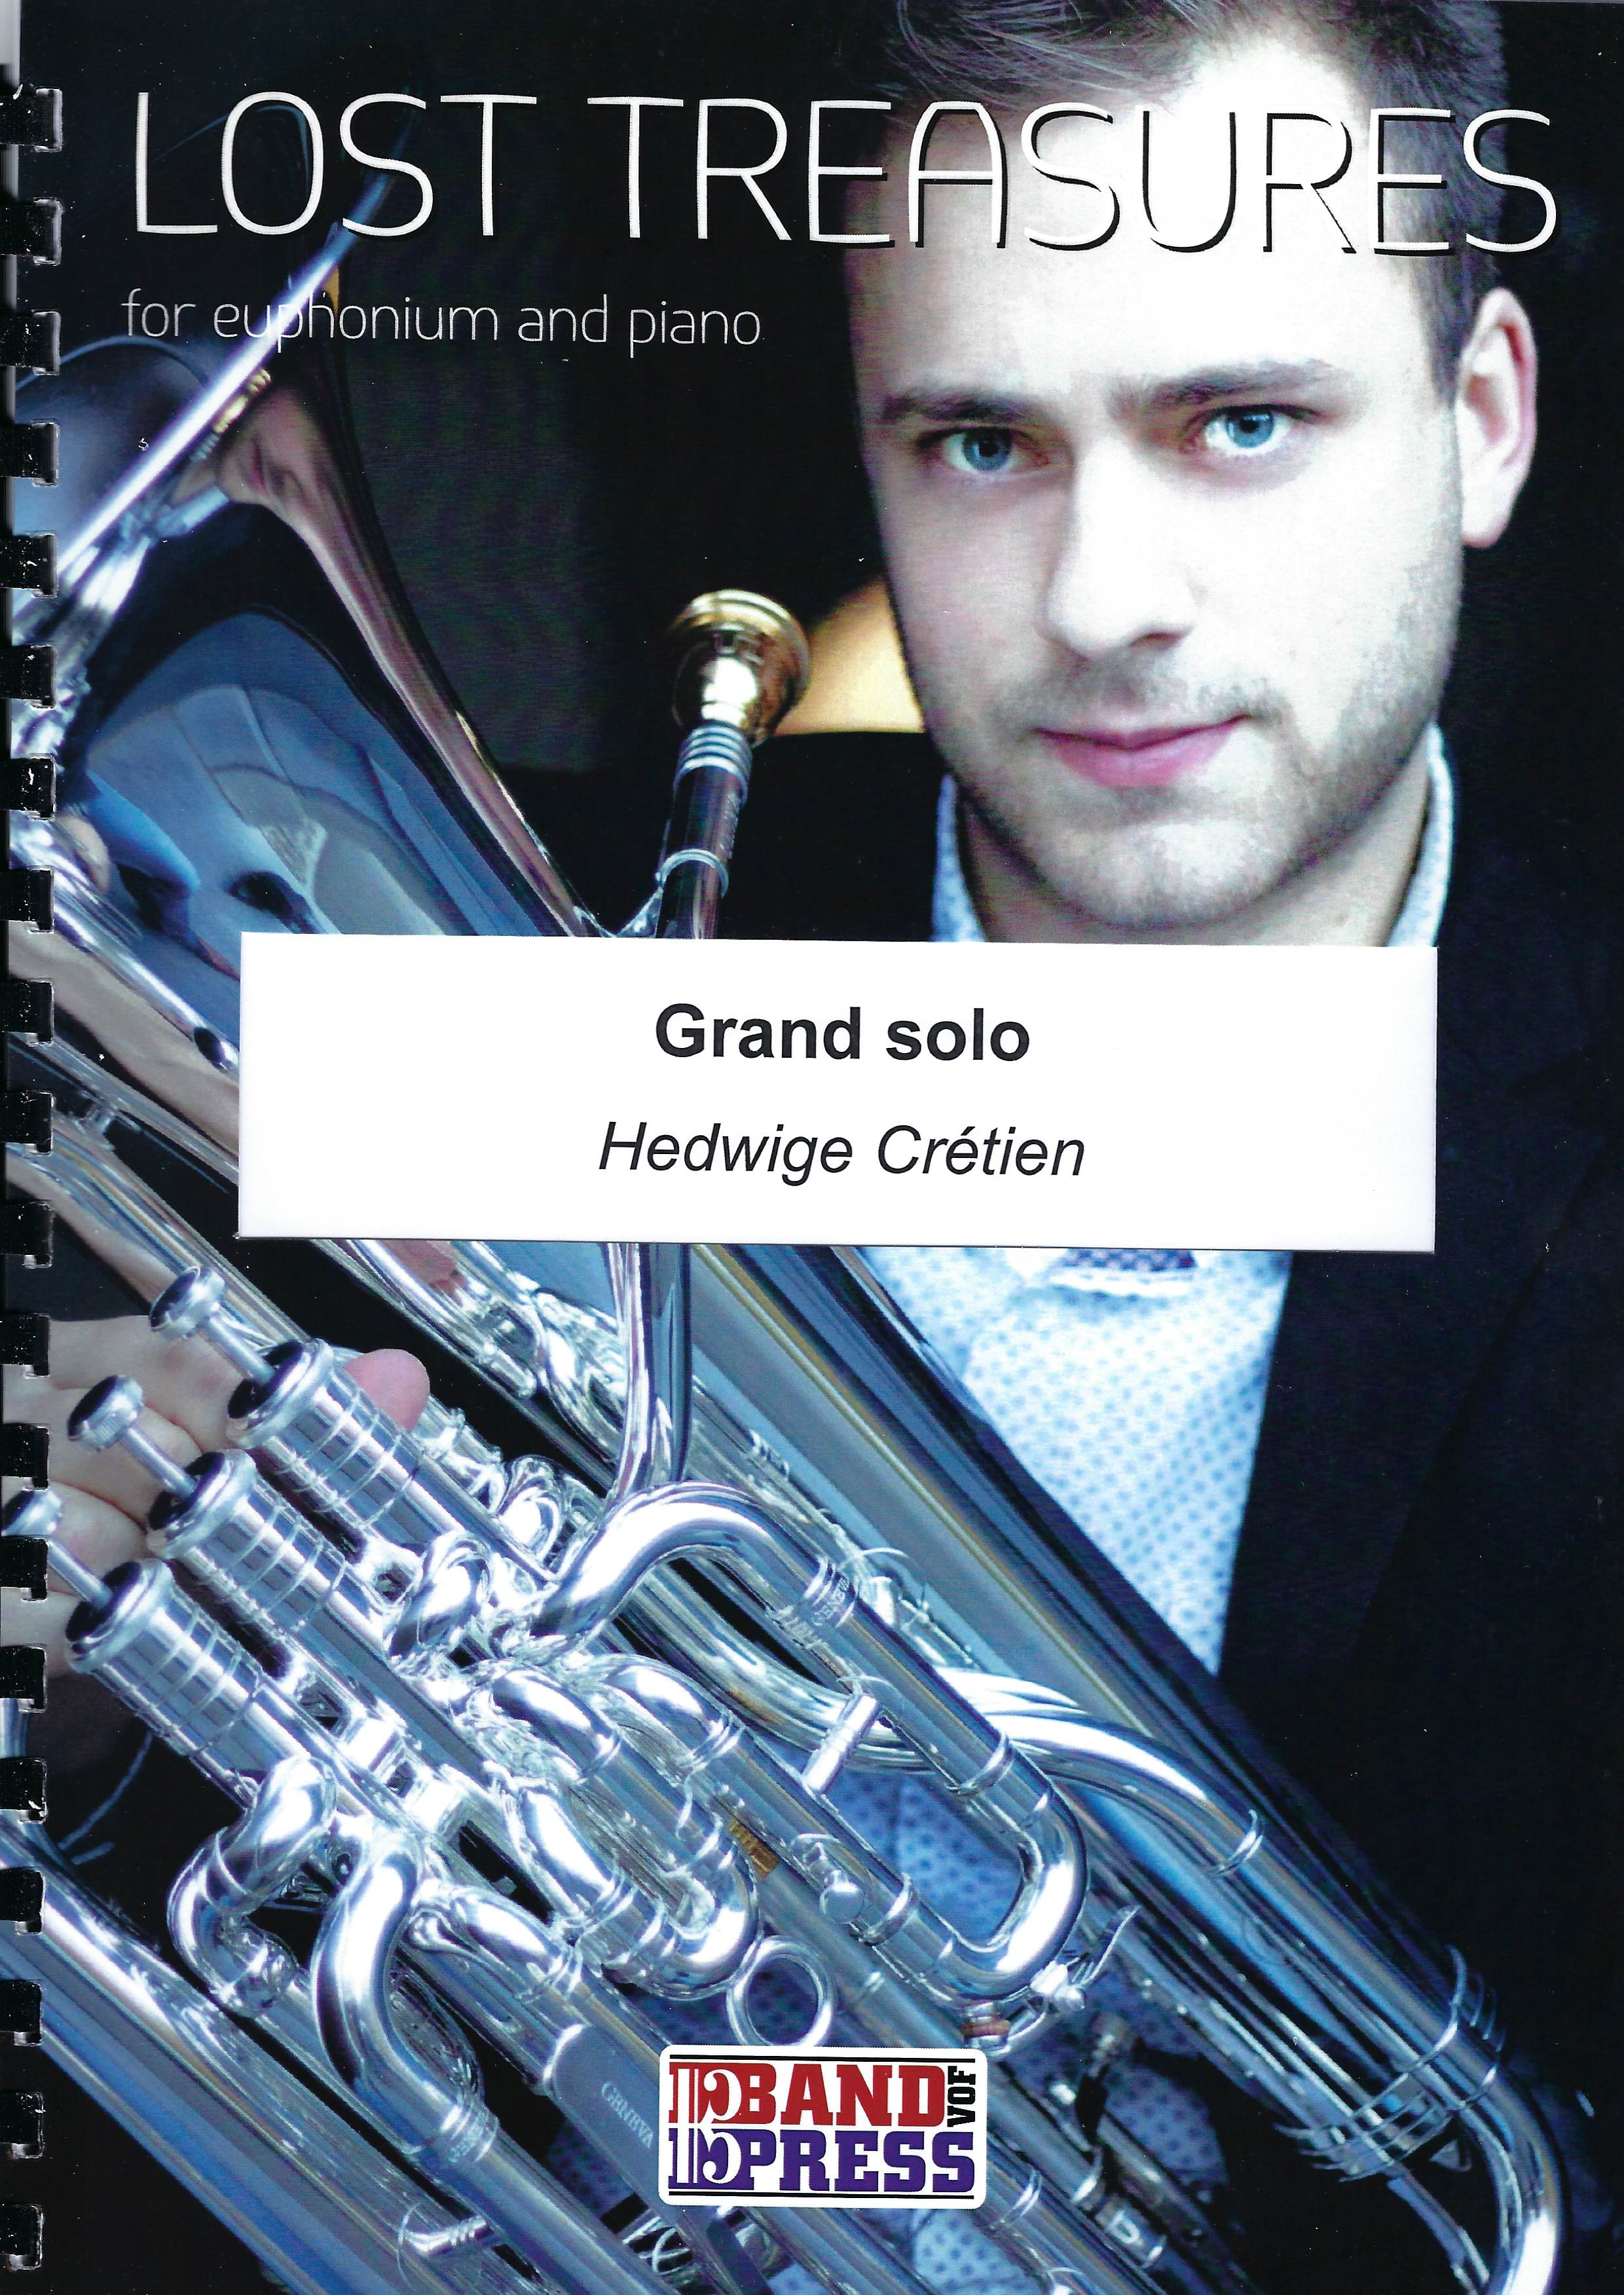 Grand Solo - Hedwige Cretien - Euph and Piano (Lost Treasures Series)